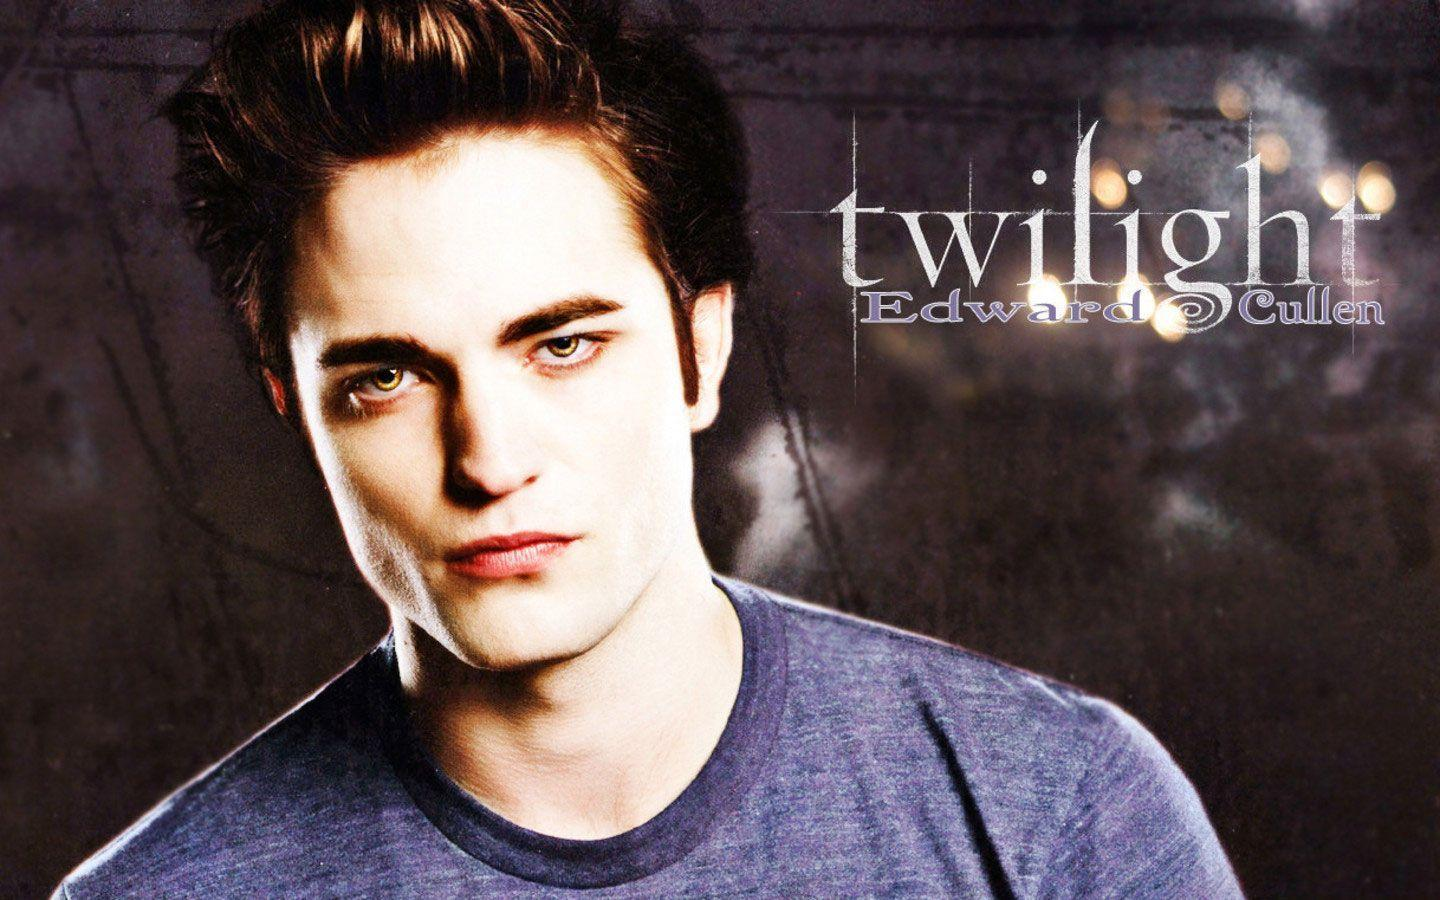 Edward Cullen Wallpaper Twilight Movie Hd